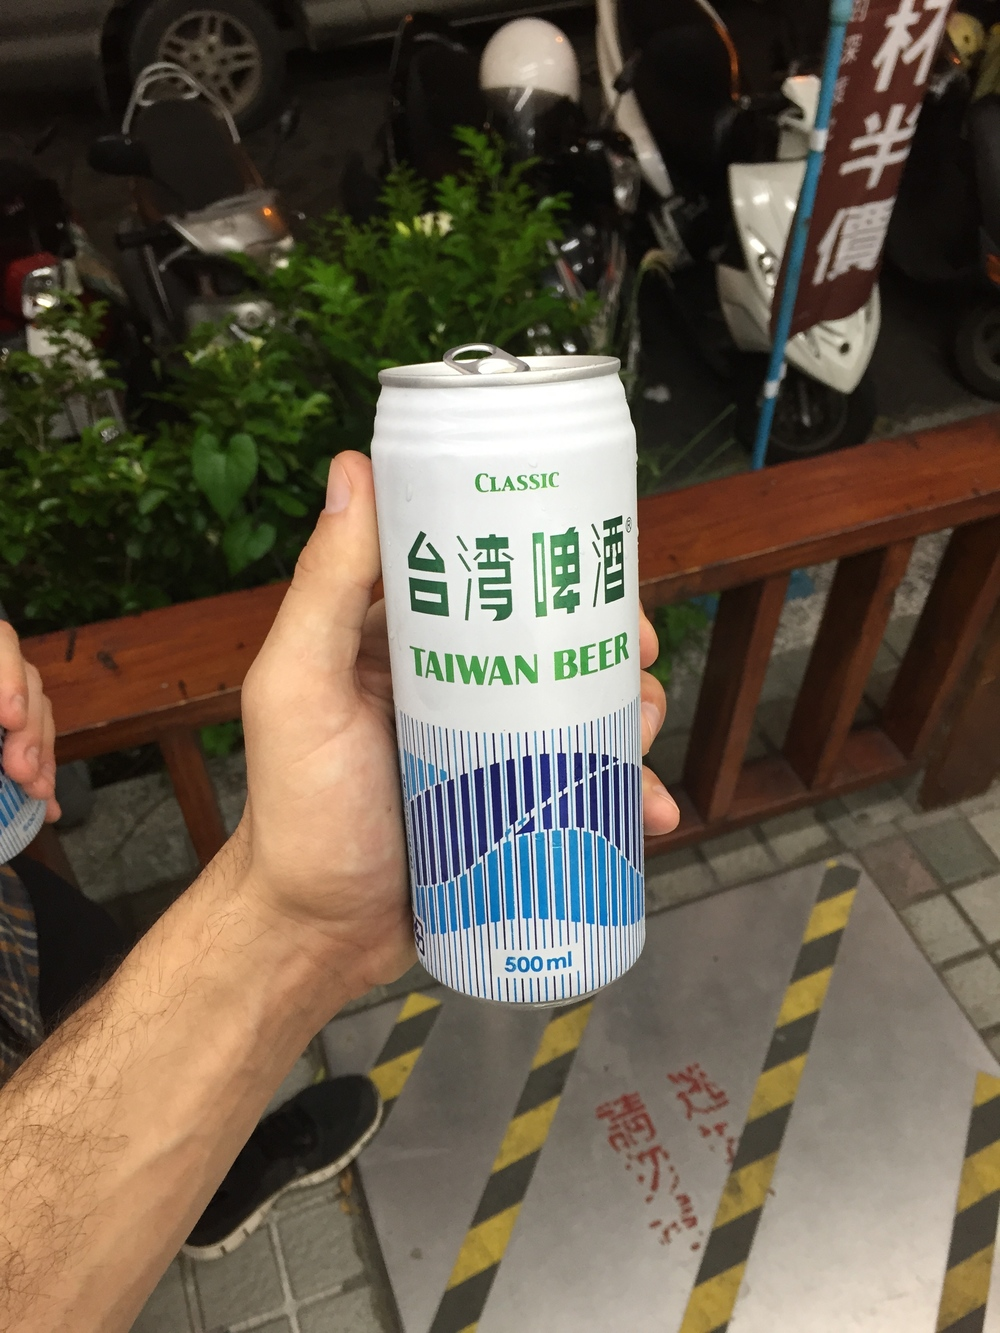 There are no open container laws in Taiwan; I recommend taking advantage.